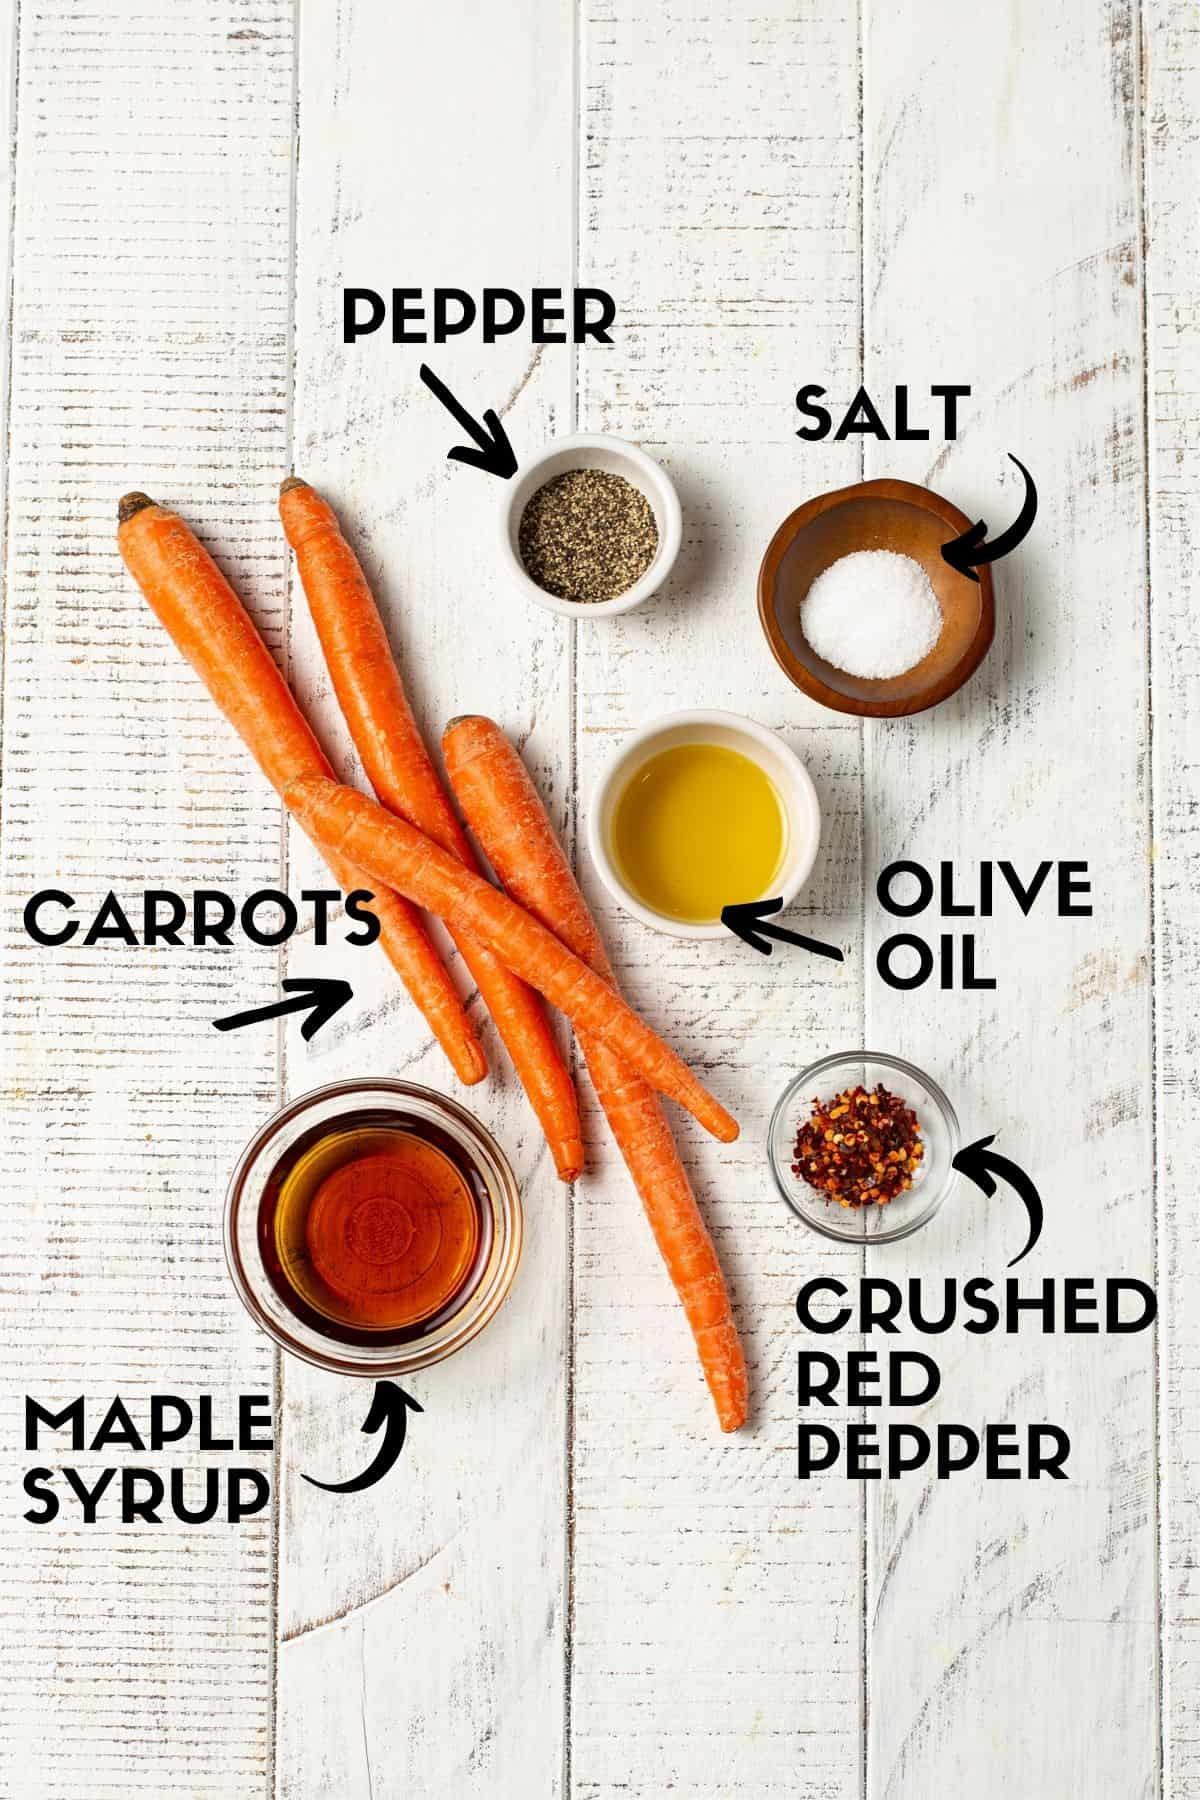 Ingredients needed for roasted carrots, including carrots, maple syrup and crushed red pepper.